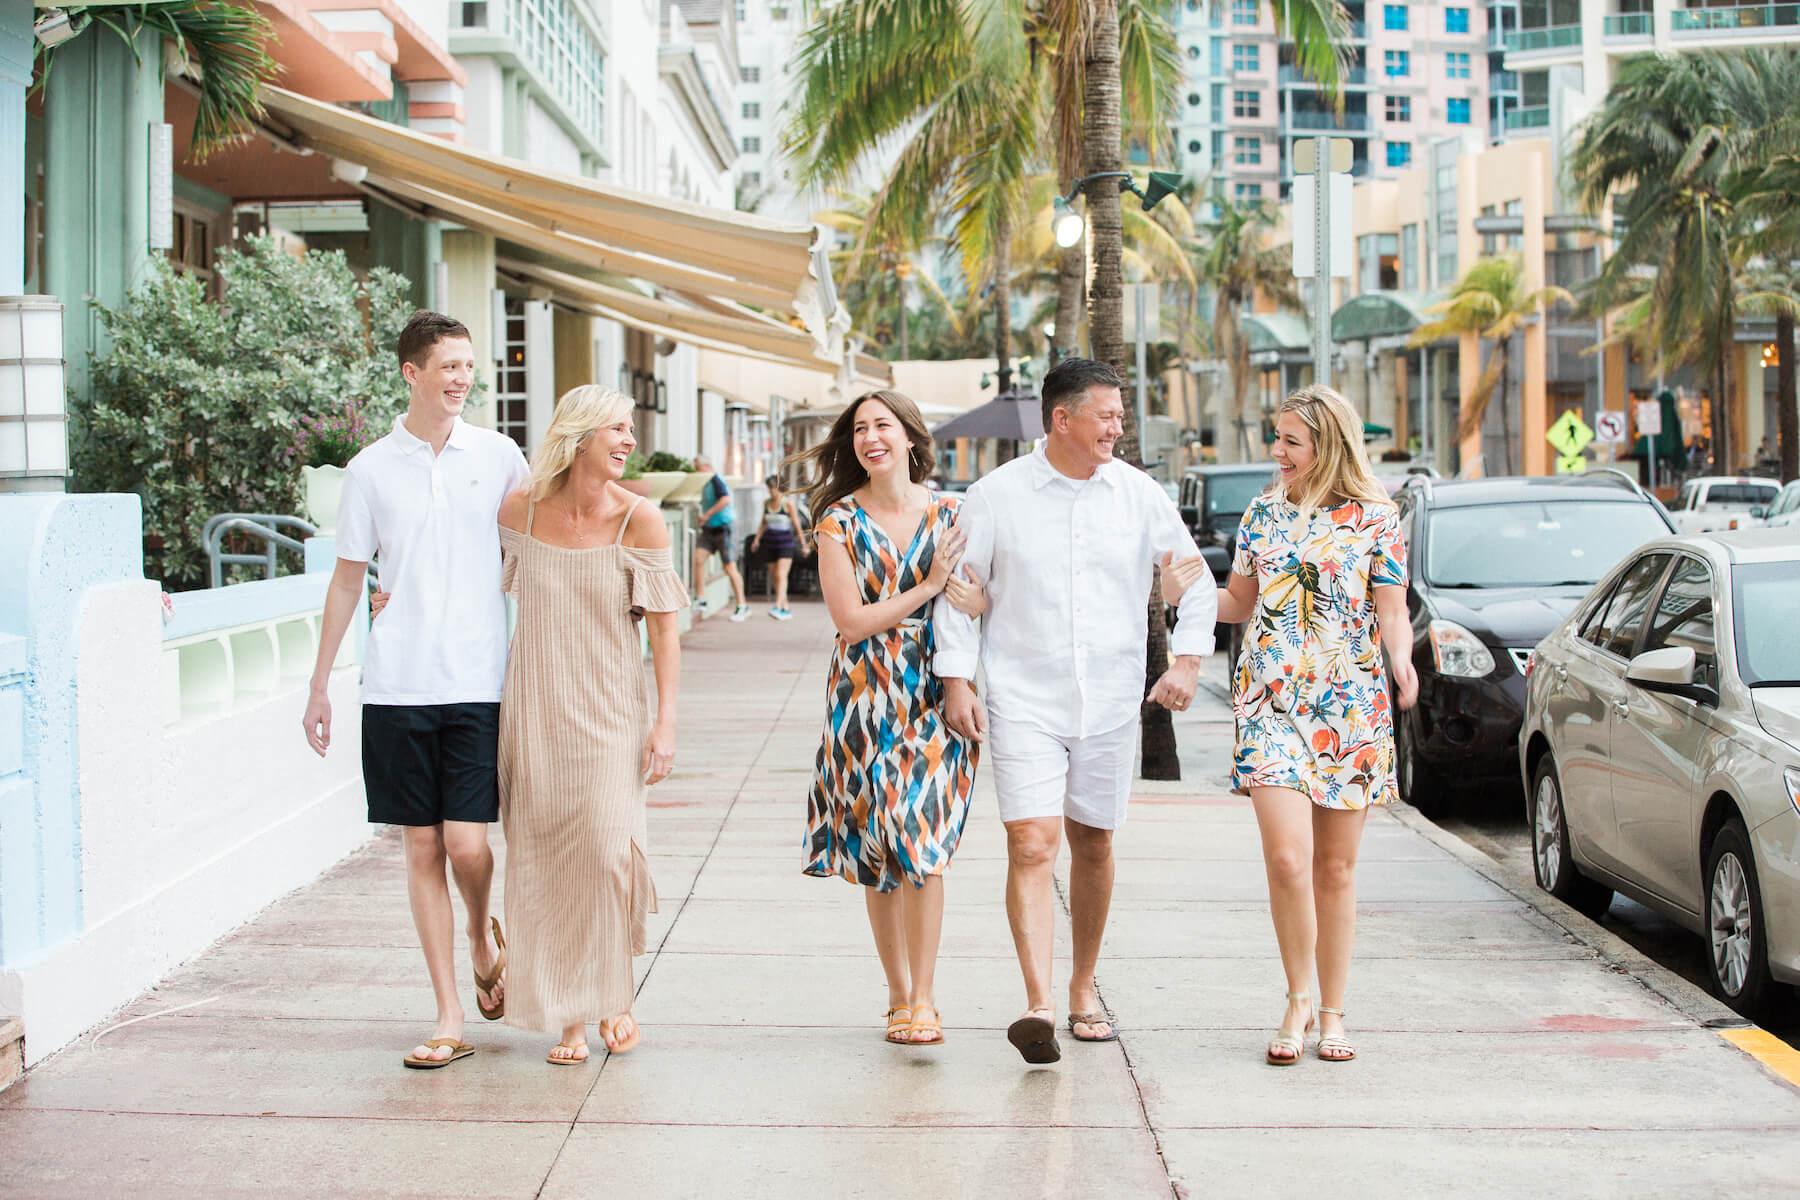 family walking down the street in Miami, Florida